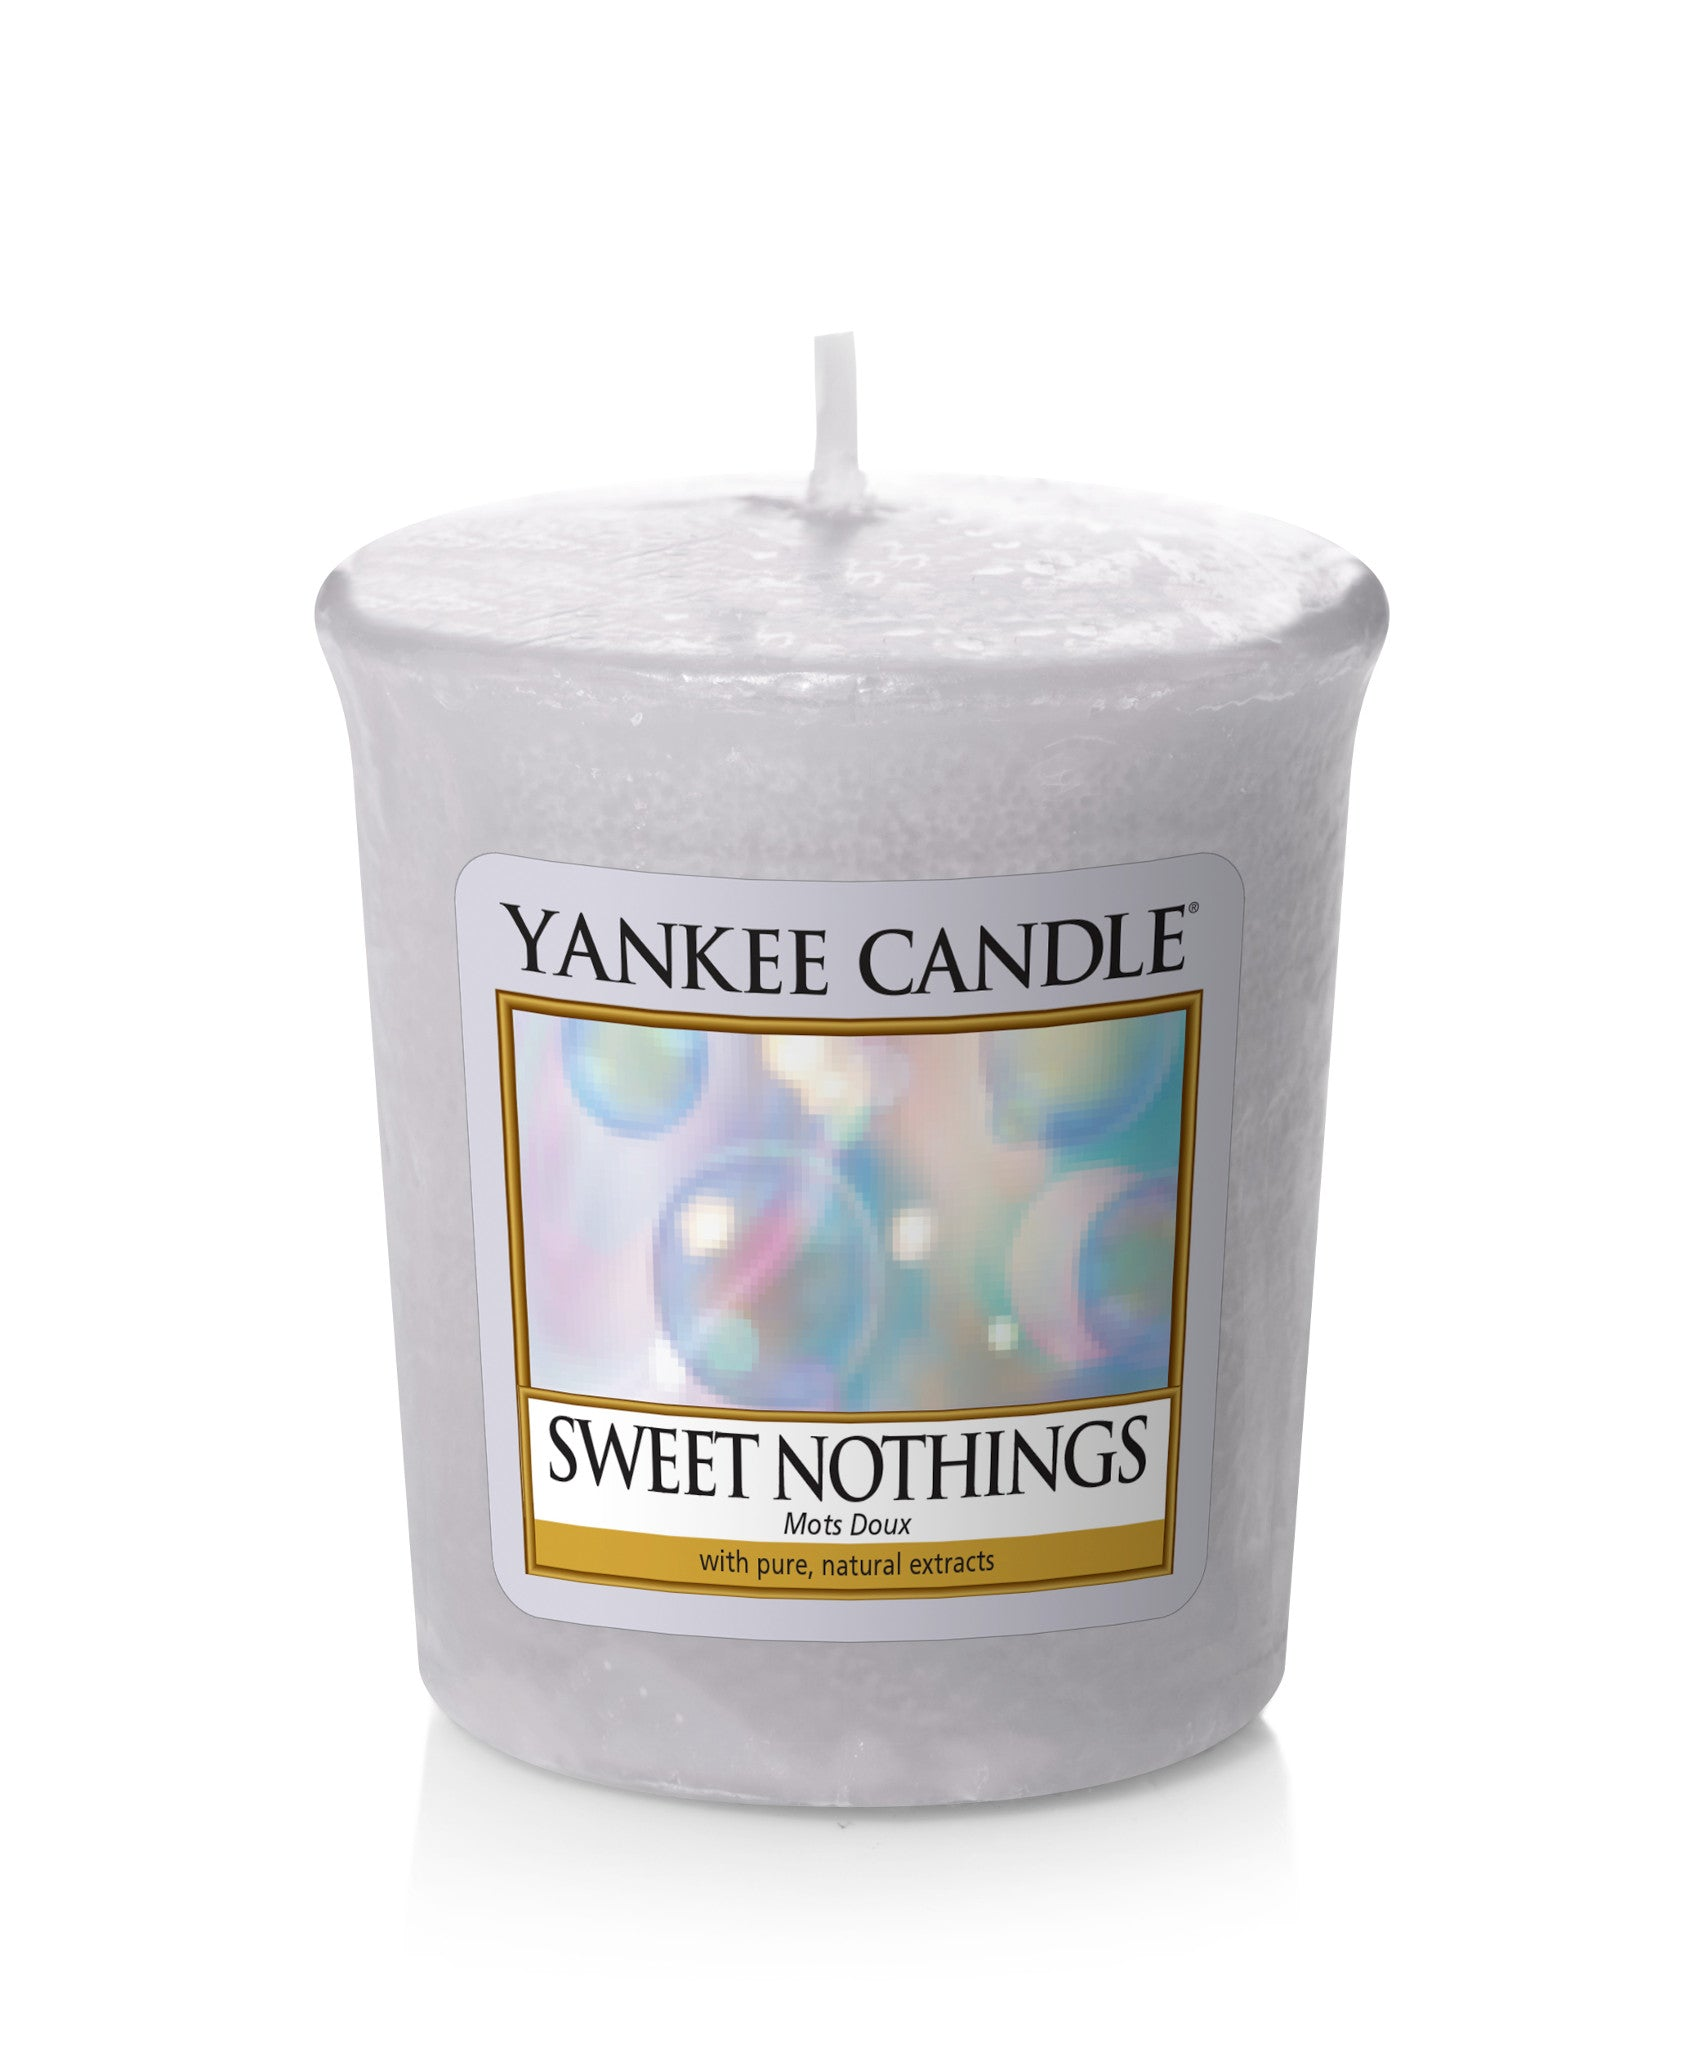 SWEET NOTHINGS -Yankee Candle- Candela Sampler